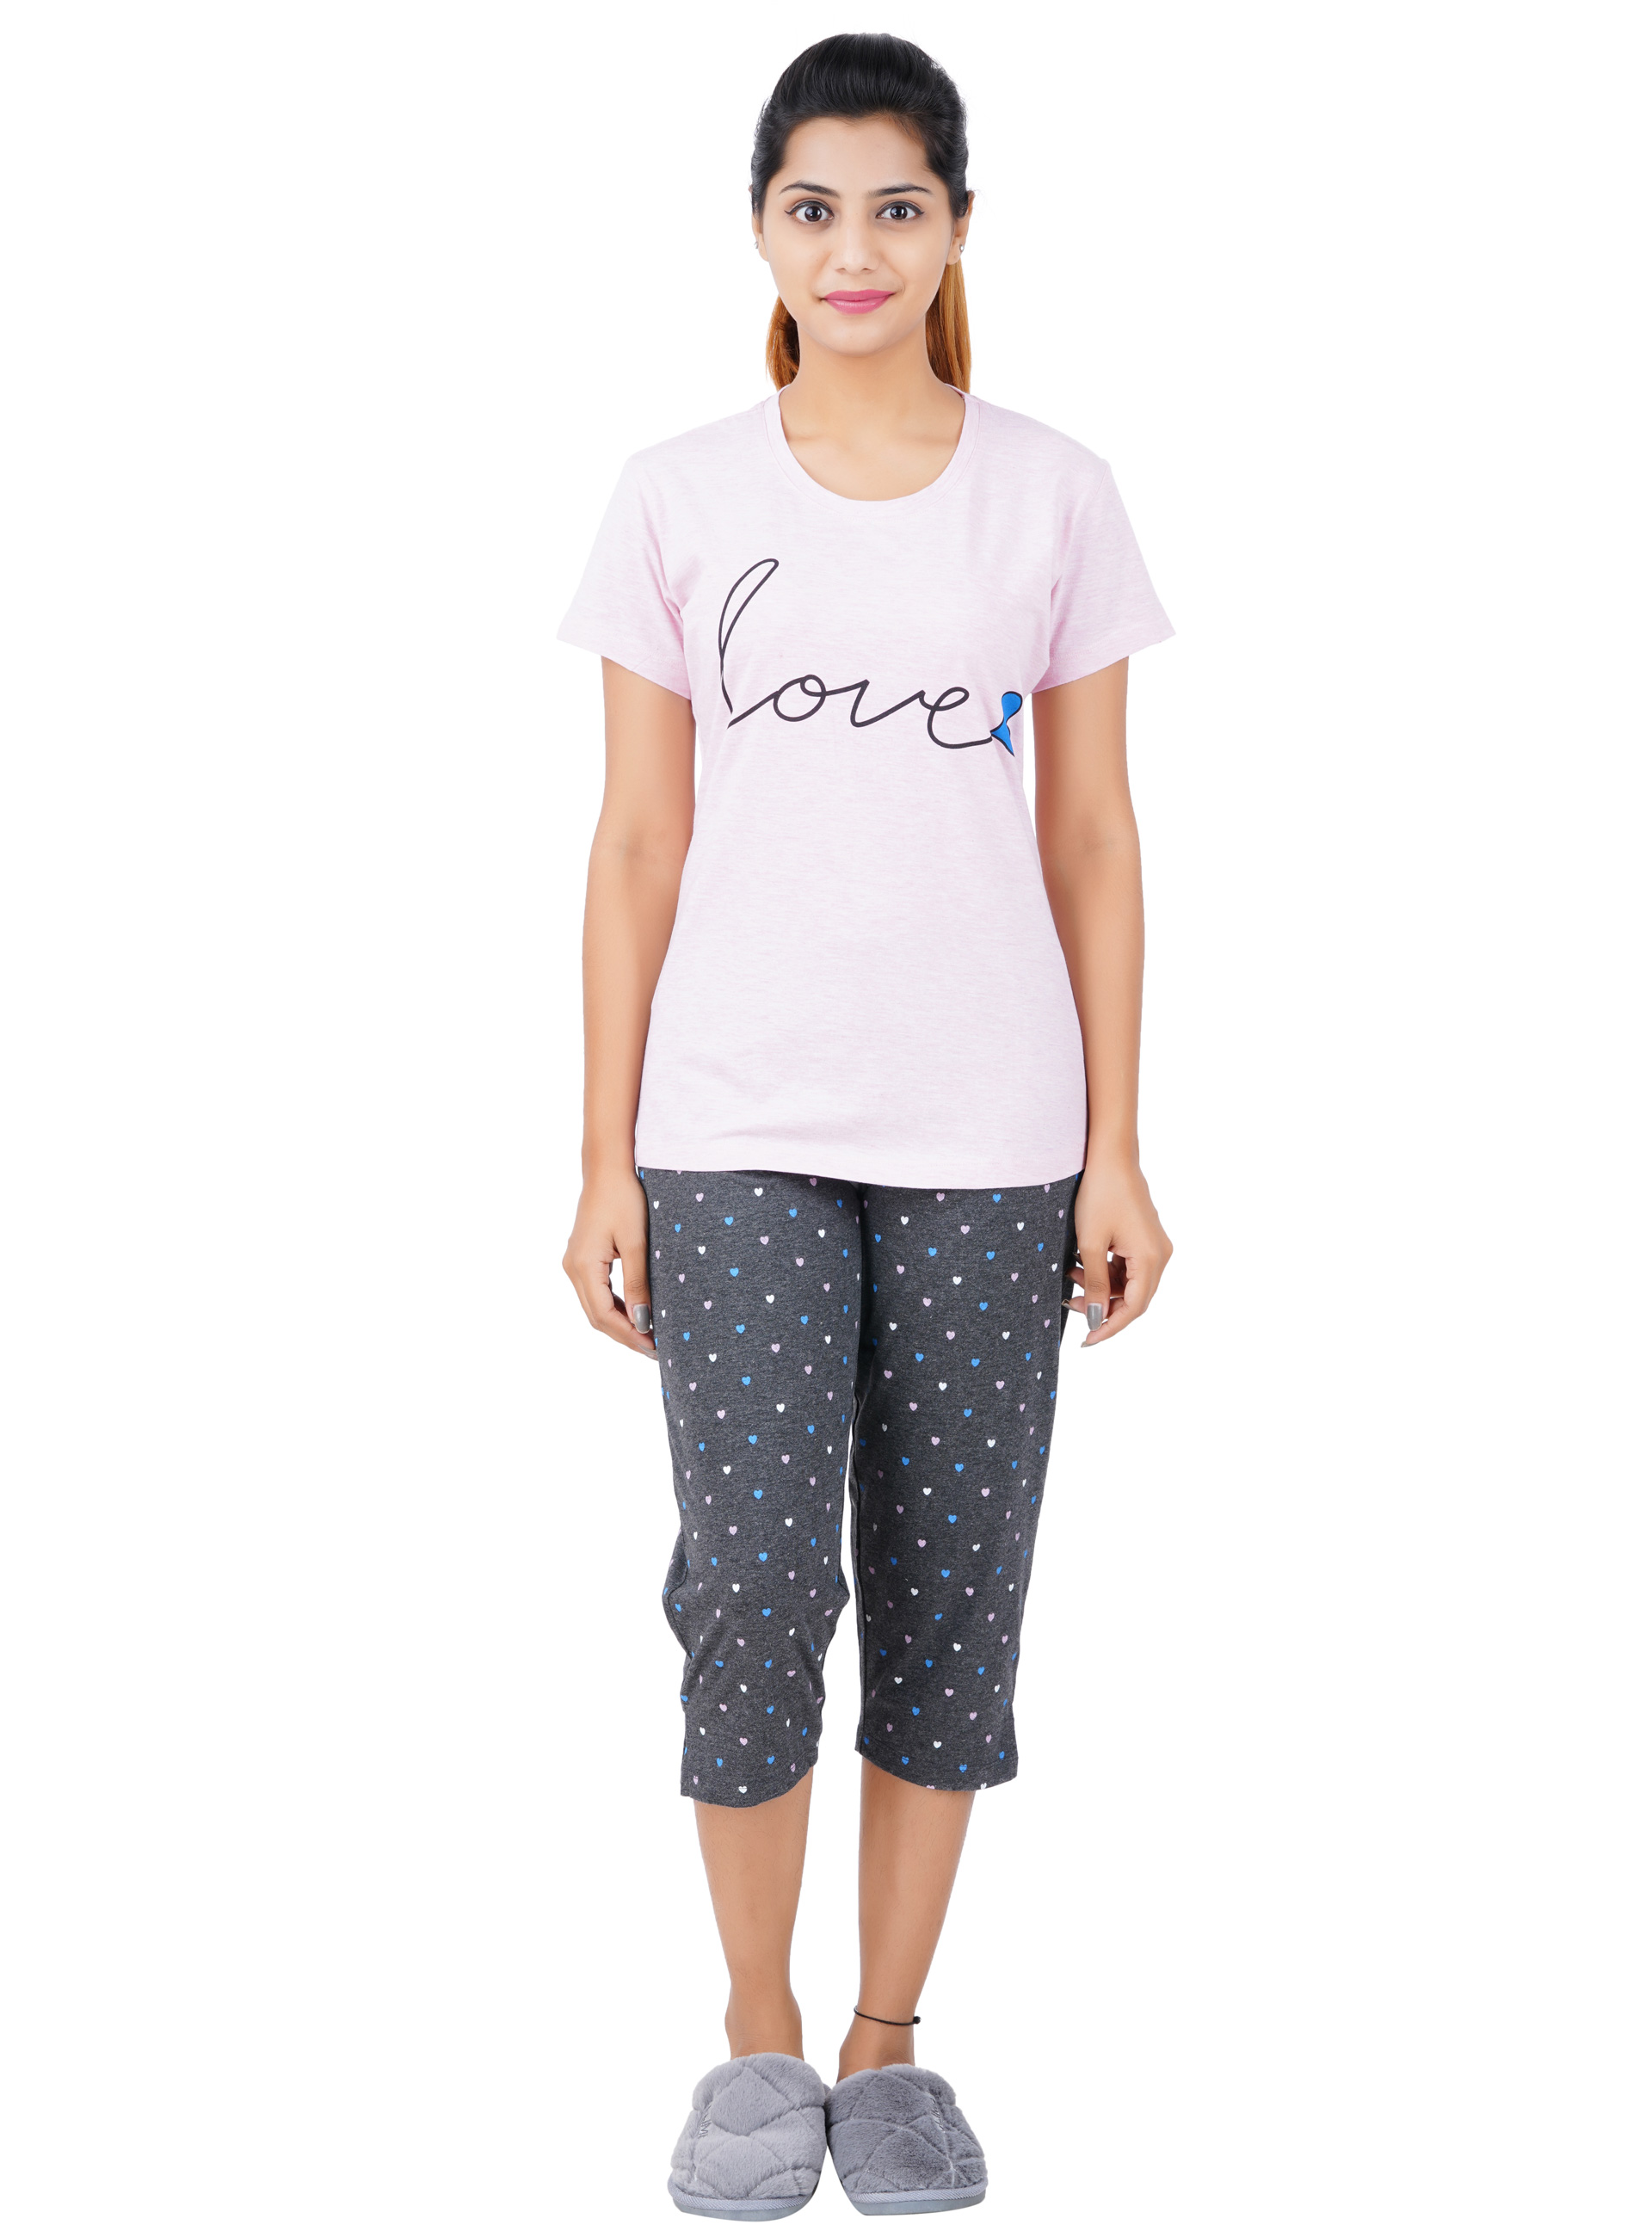 Aswati Pink 3/4 Full Set Capri - Love